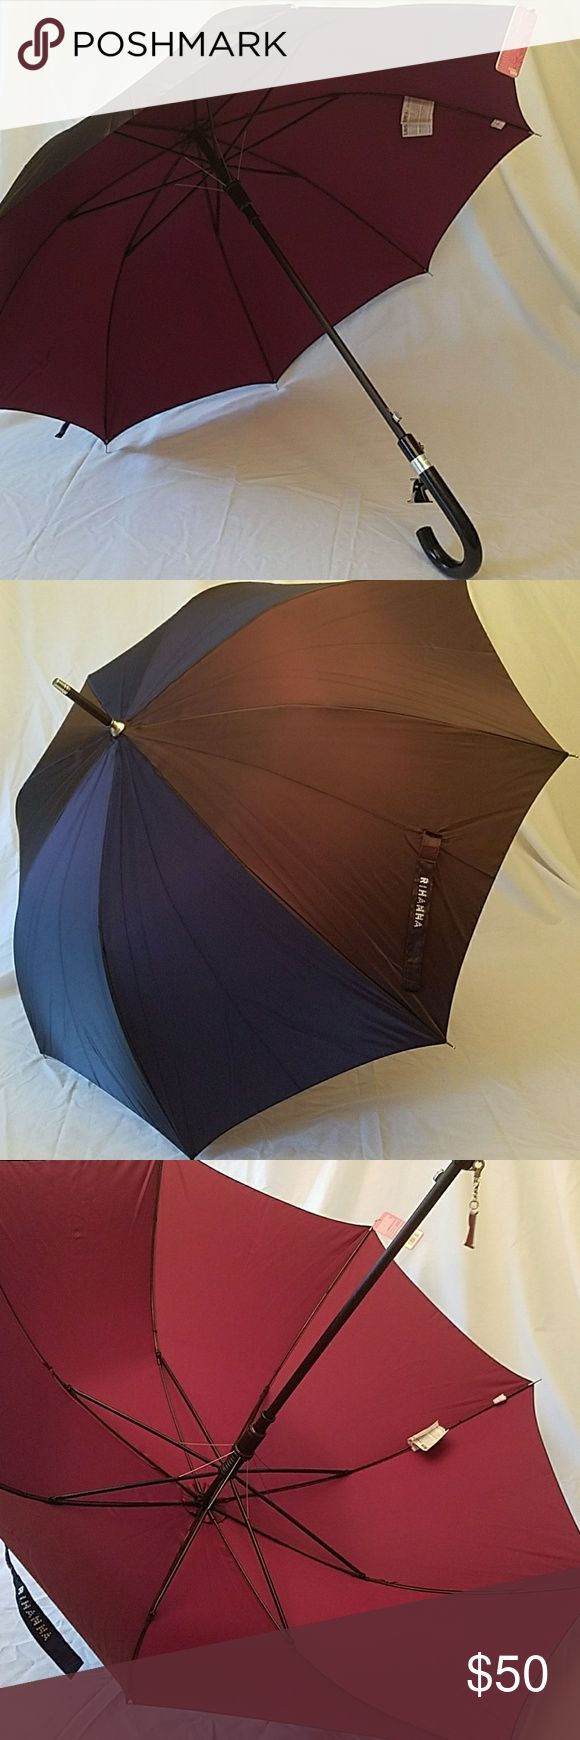 "Rihanna Umbrella for Totes in Iridescant Black I currently 3 Black/purple, and 1 Silver/purple. All are new in their original packaging Brand new with tags Made in collaboration by Rihanna and Totes for Rihanna's hit song ""Umbrella"" back in 2008 Outside is Iridescant Black or Silver, inside is Iridescant Purple RIHANNA is spelled on the clasp in rhinestones Removable metal R keychain on handle Rare, impossible to find Clean smoke free home Totes Accessories Umbrellas"